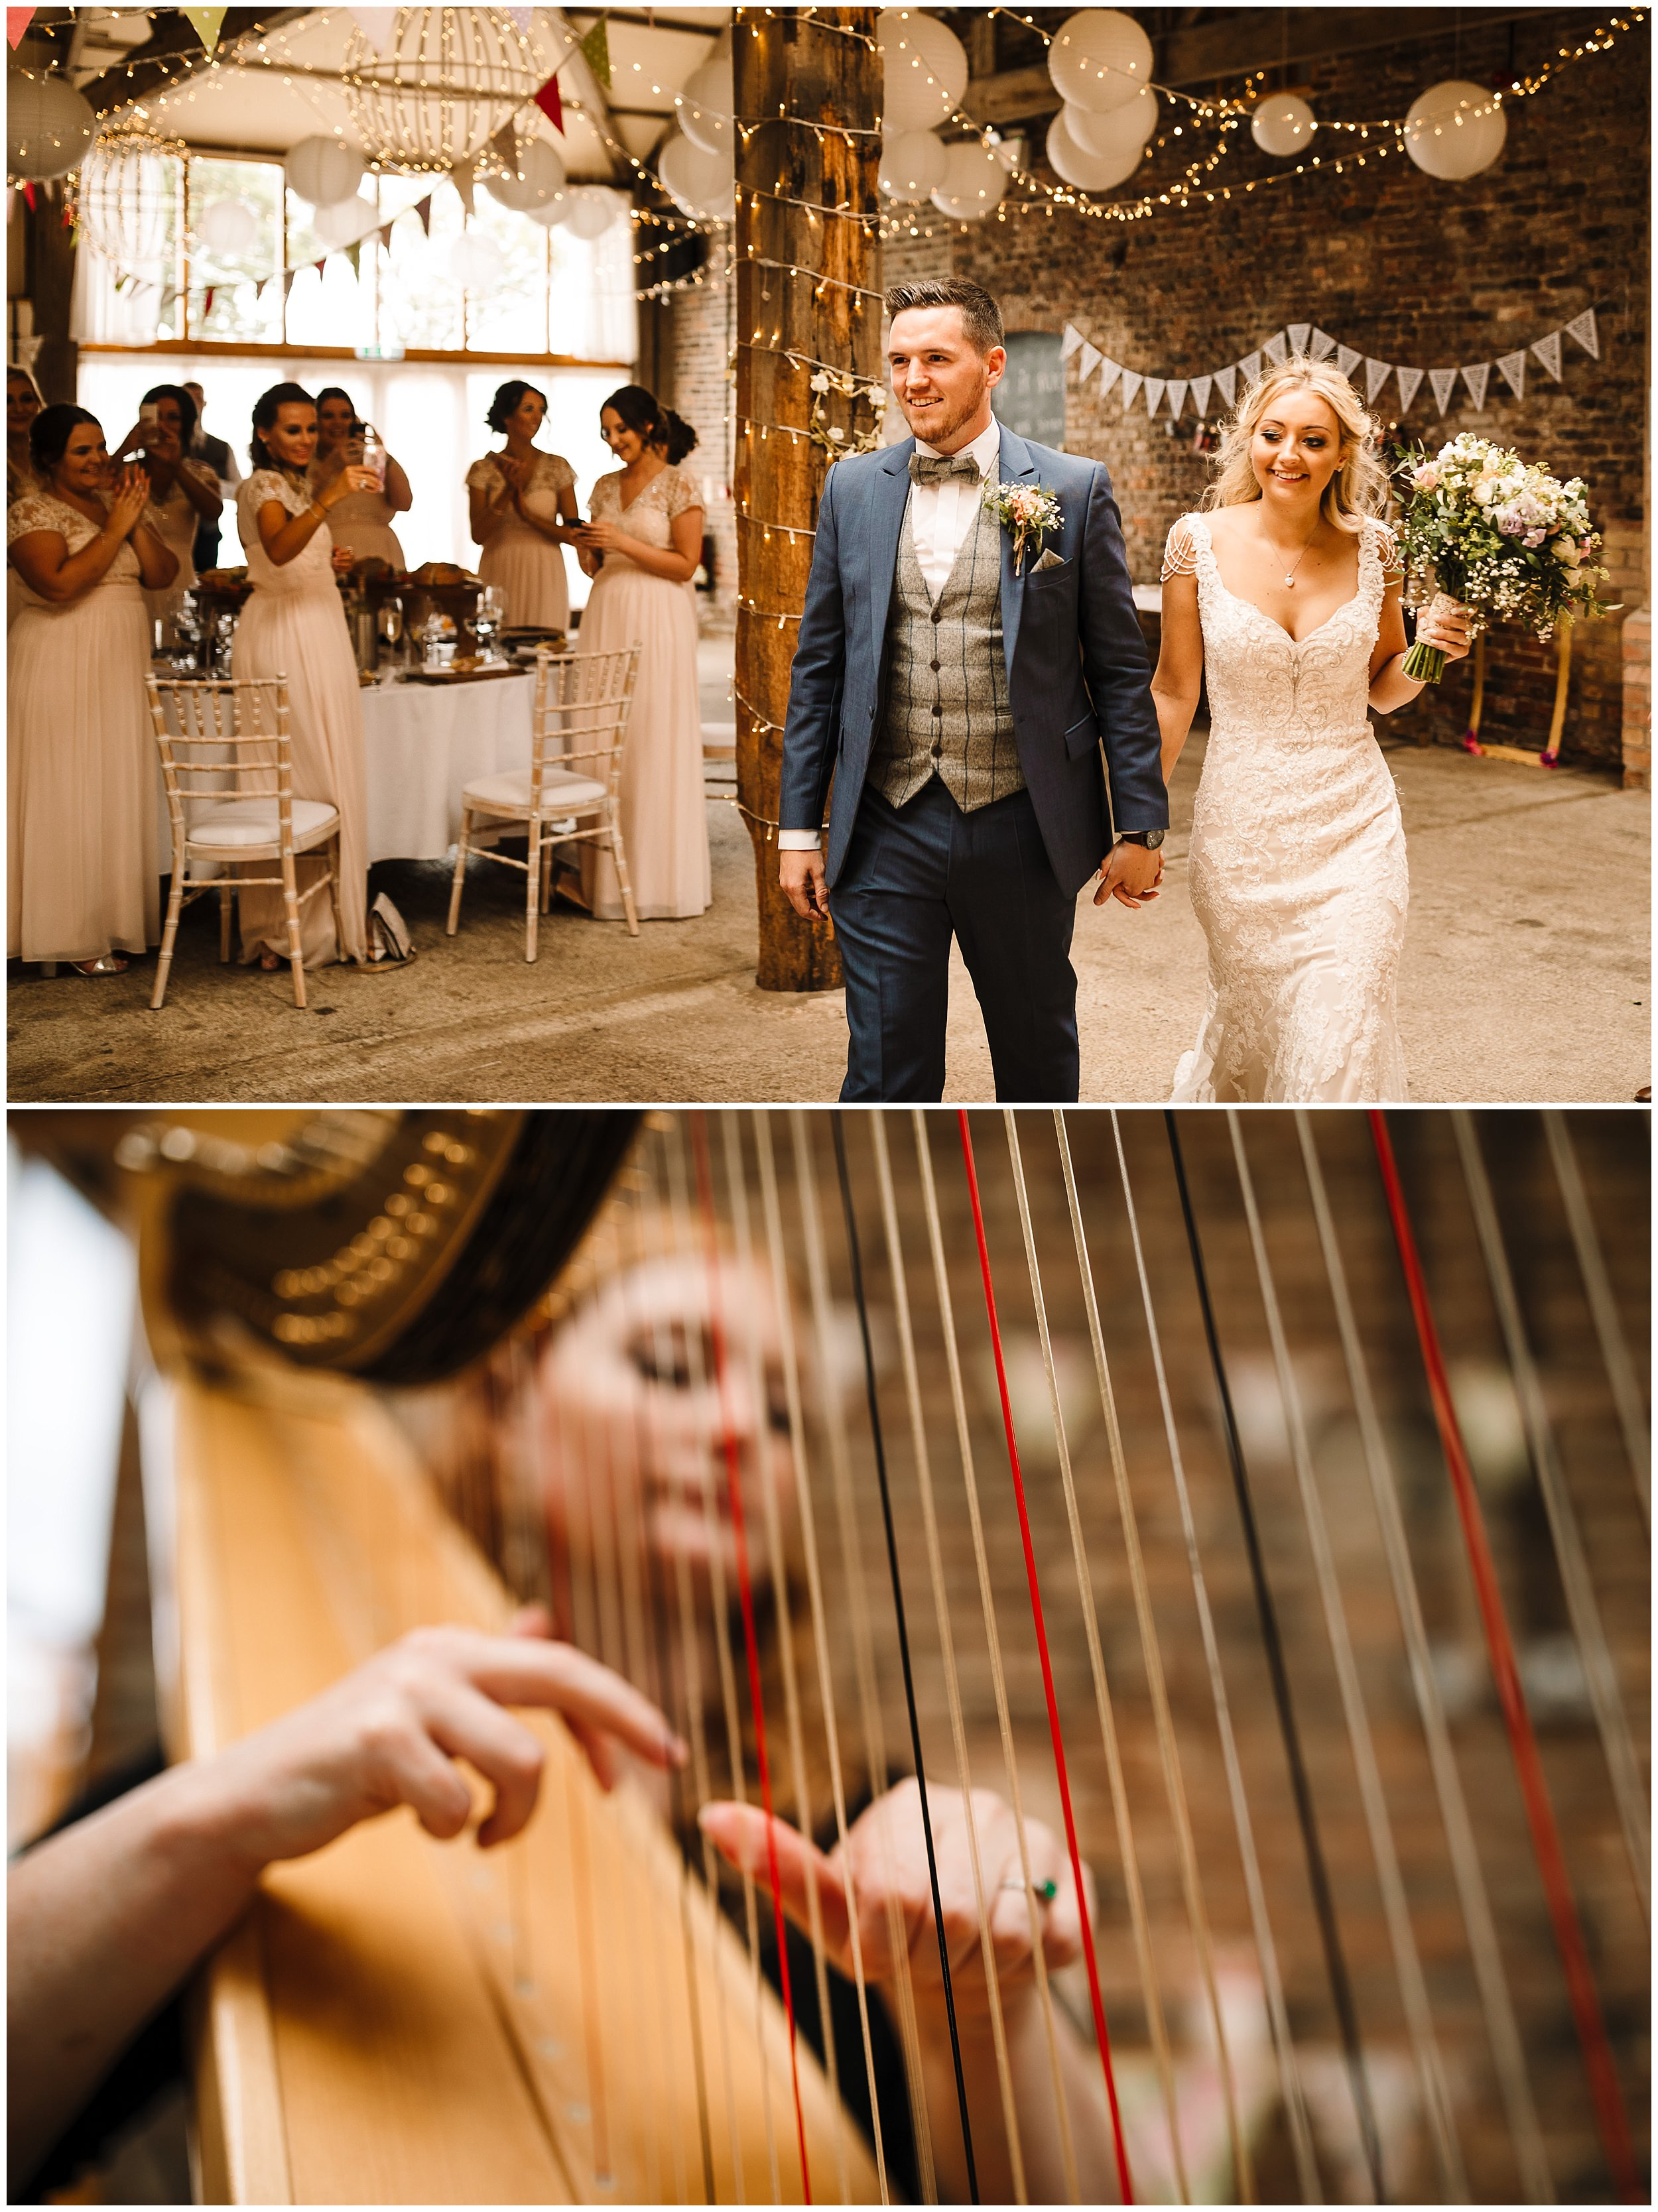 A BRIDE AND GROOM ARE ANNOUNCED INTO THE ROOM AT BARMBYFIELD BARNS